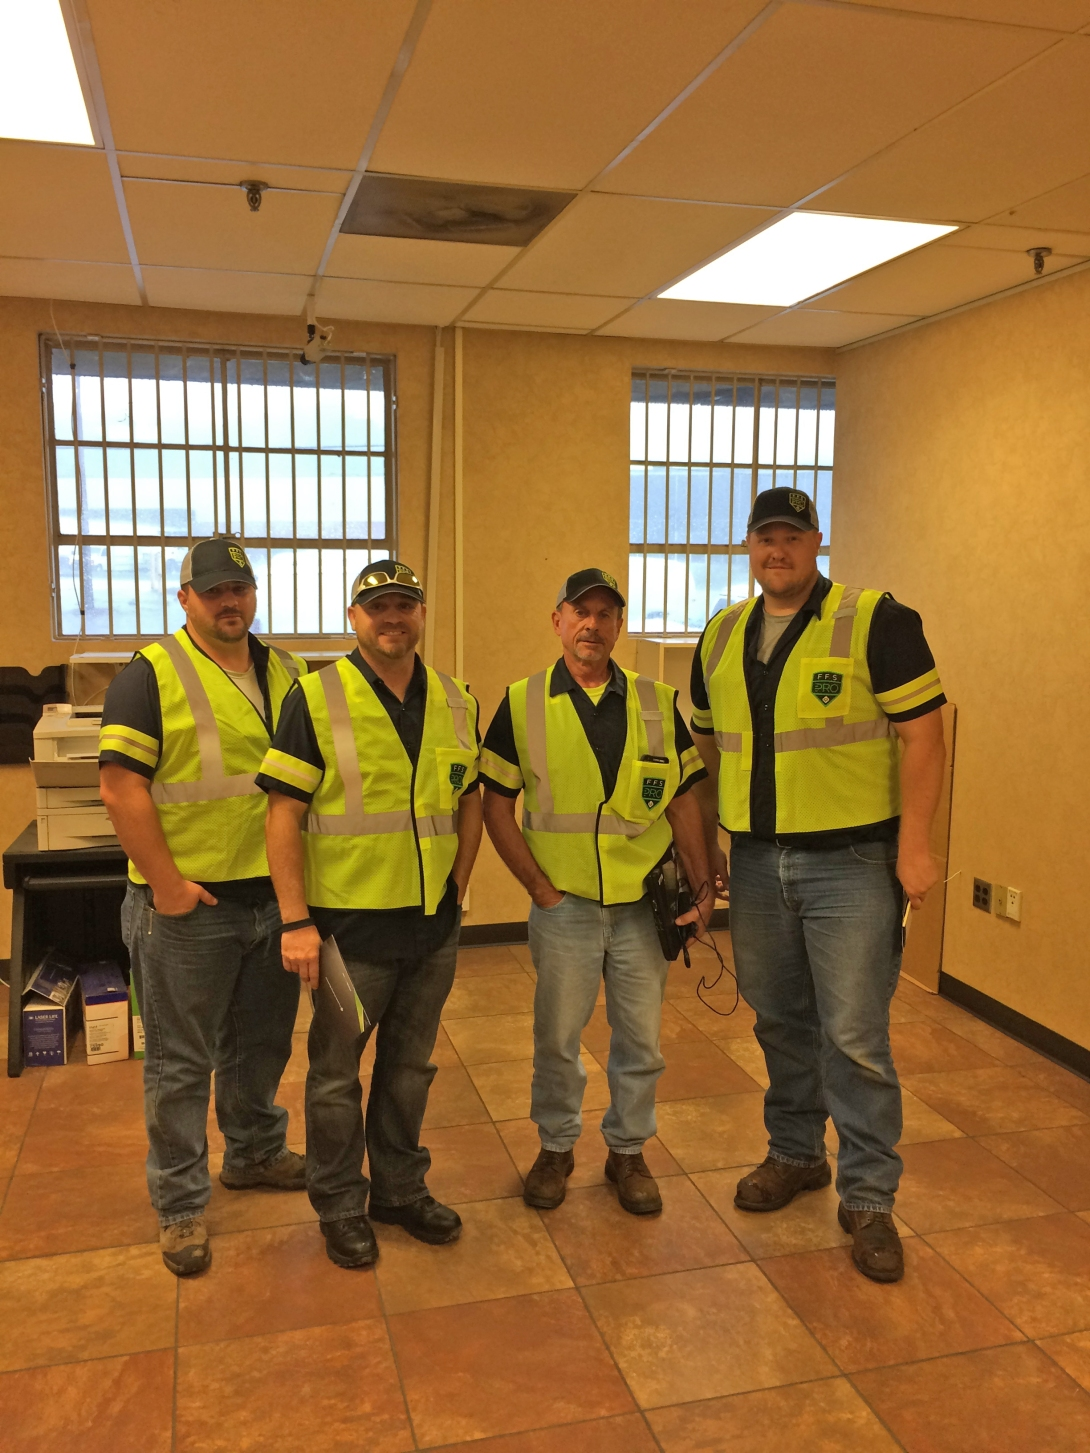 Kevin Griffith, Terry Brandlett, Jimmy Thorne and Mark Moon wearing their FFS PRO high-vis safety gear.